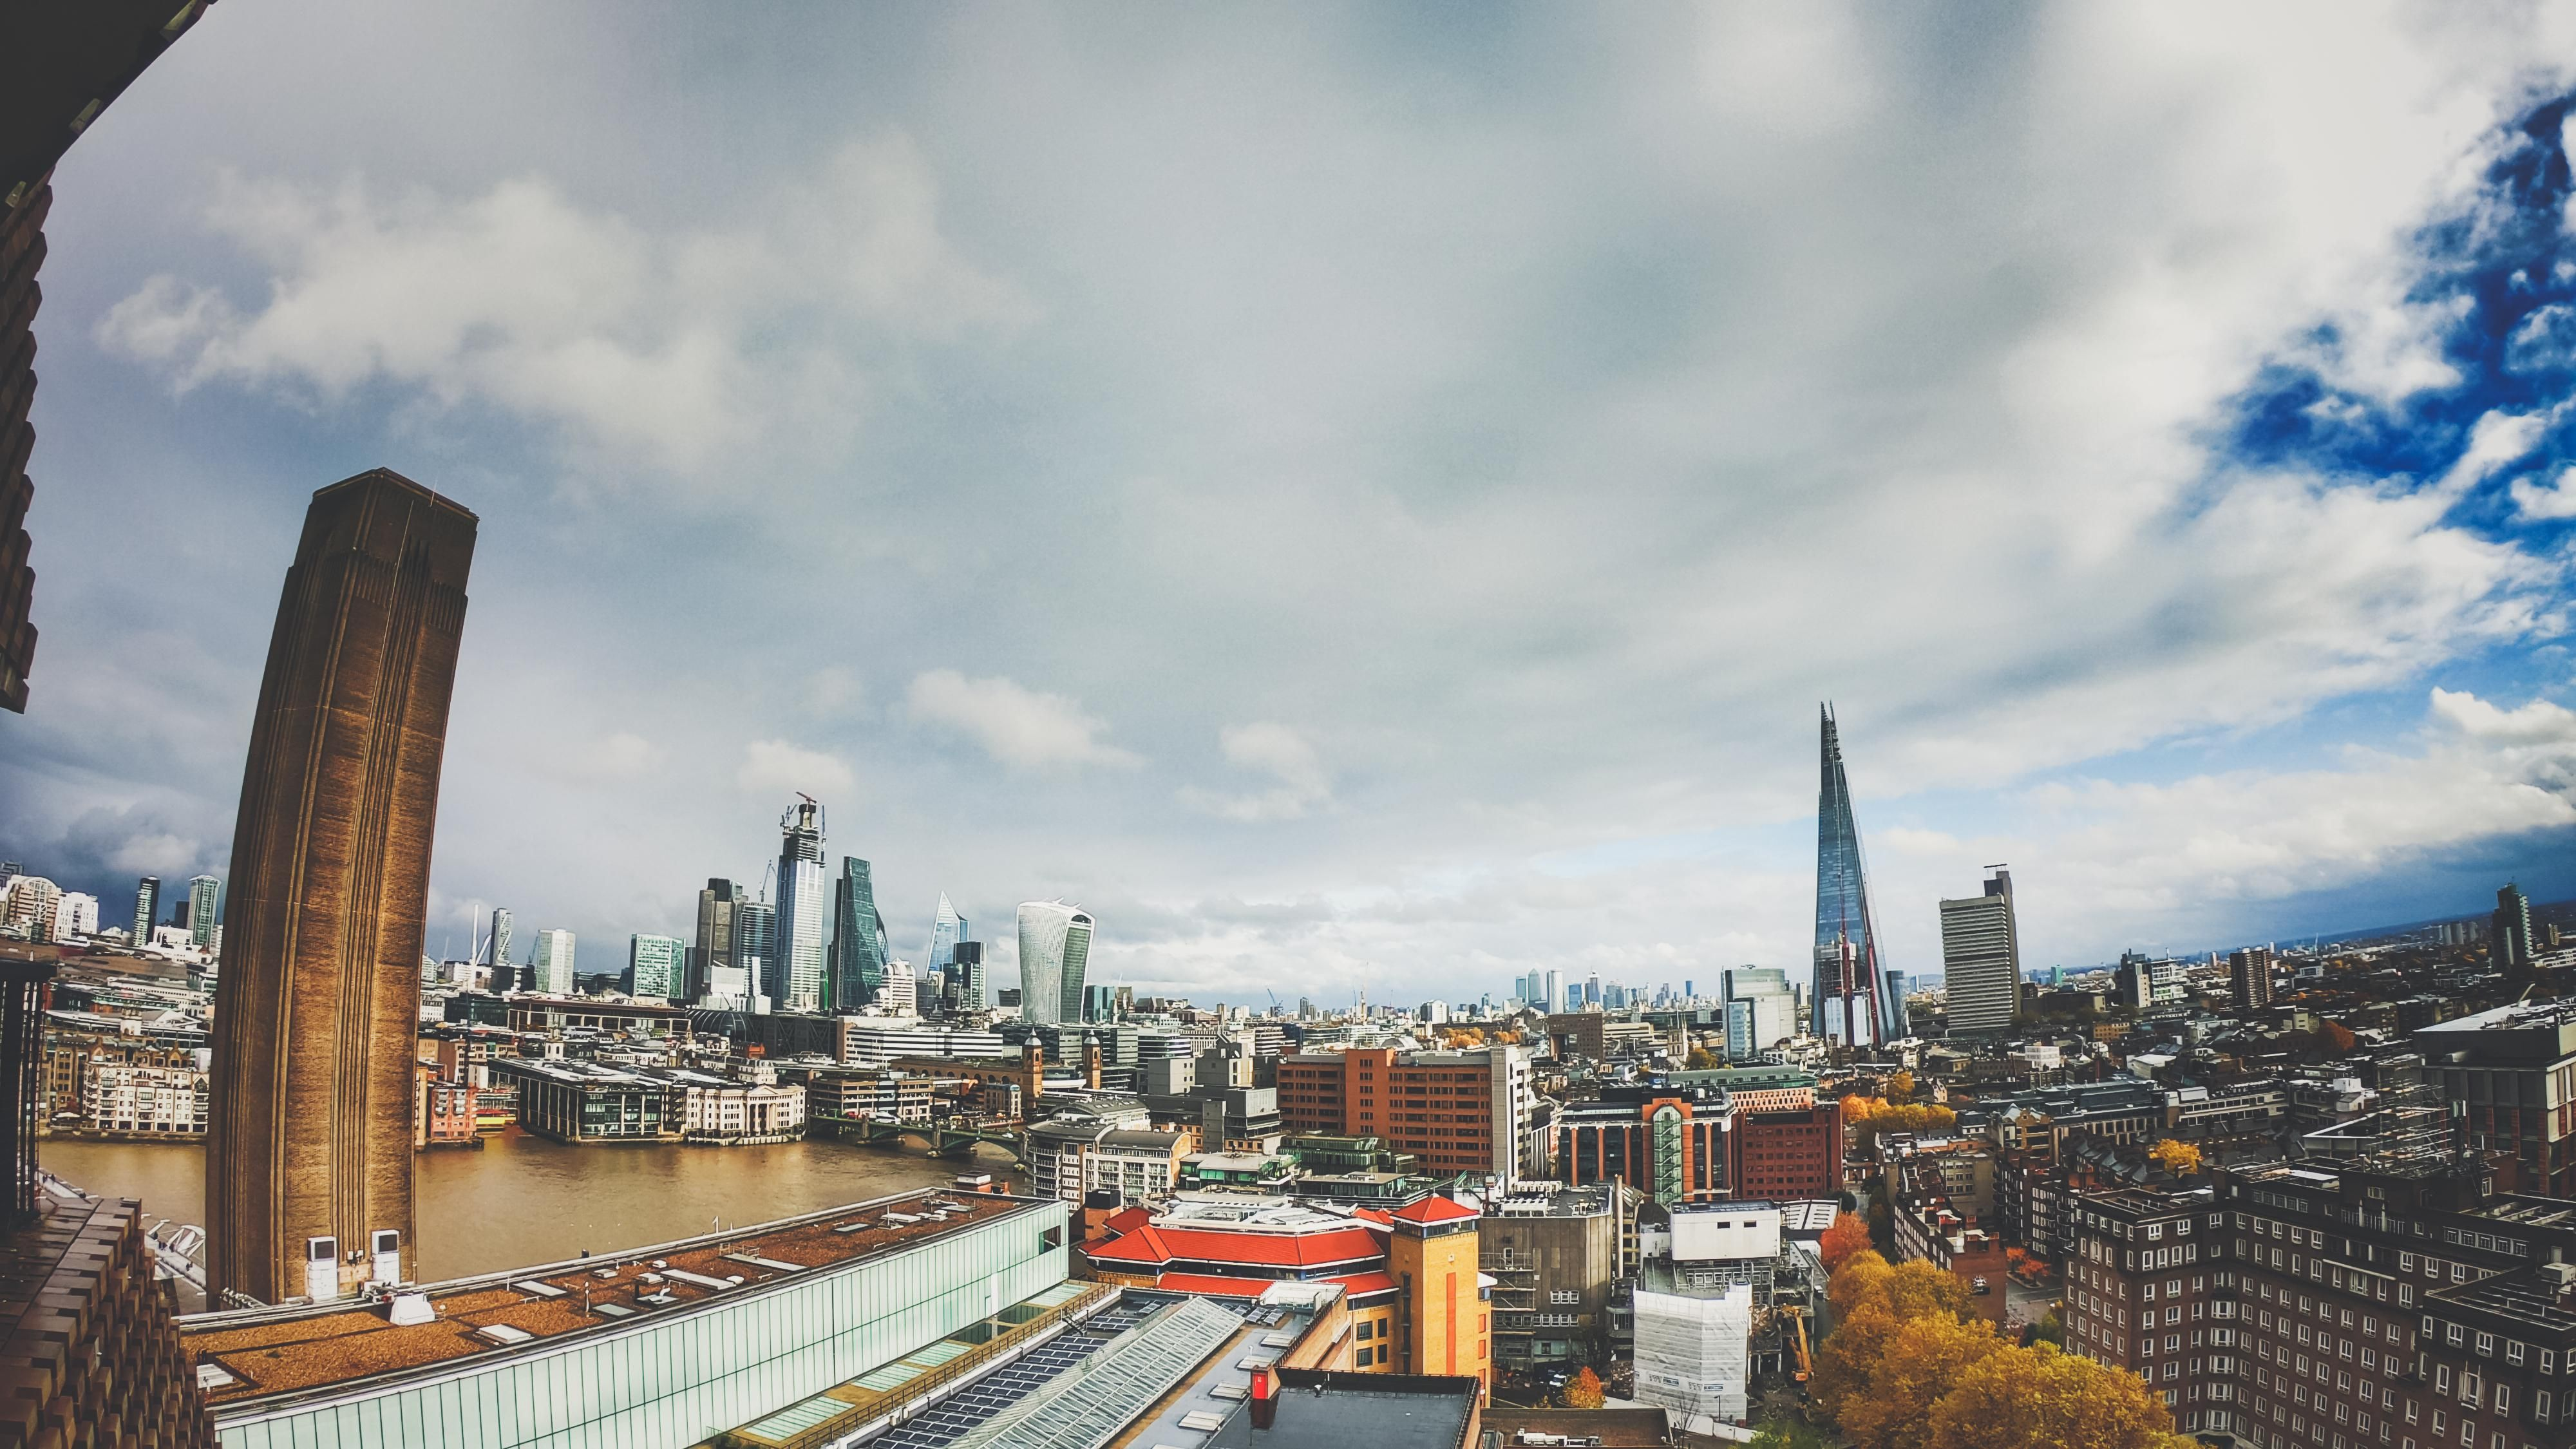 Epic View From The Free Viewing Level In The Back Of The Tate Modern Views Epic London